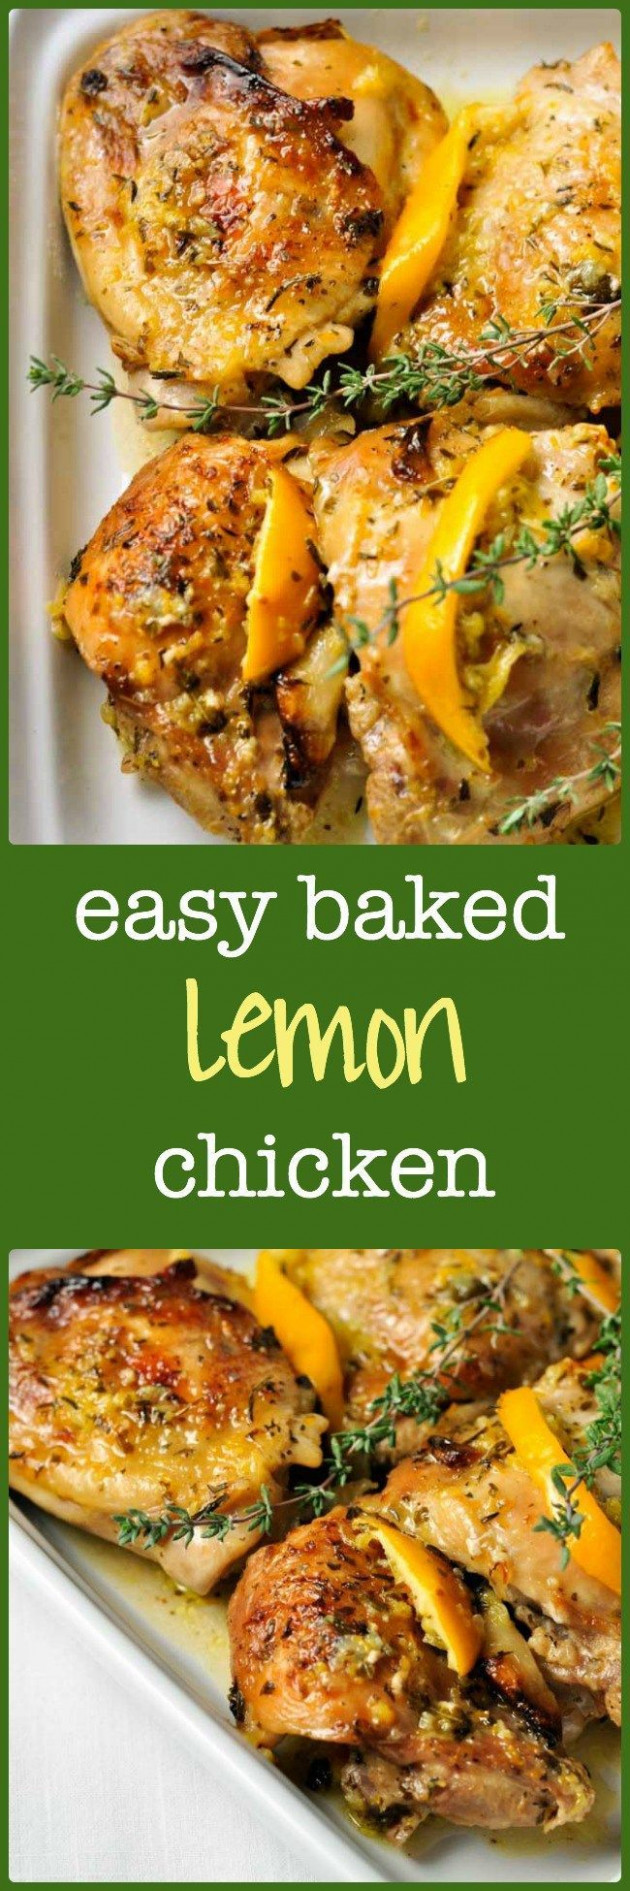 Easy Baked Lemon Chicken | Recipe | Wraps, Succulents and ...